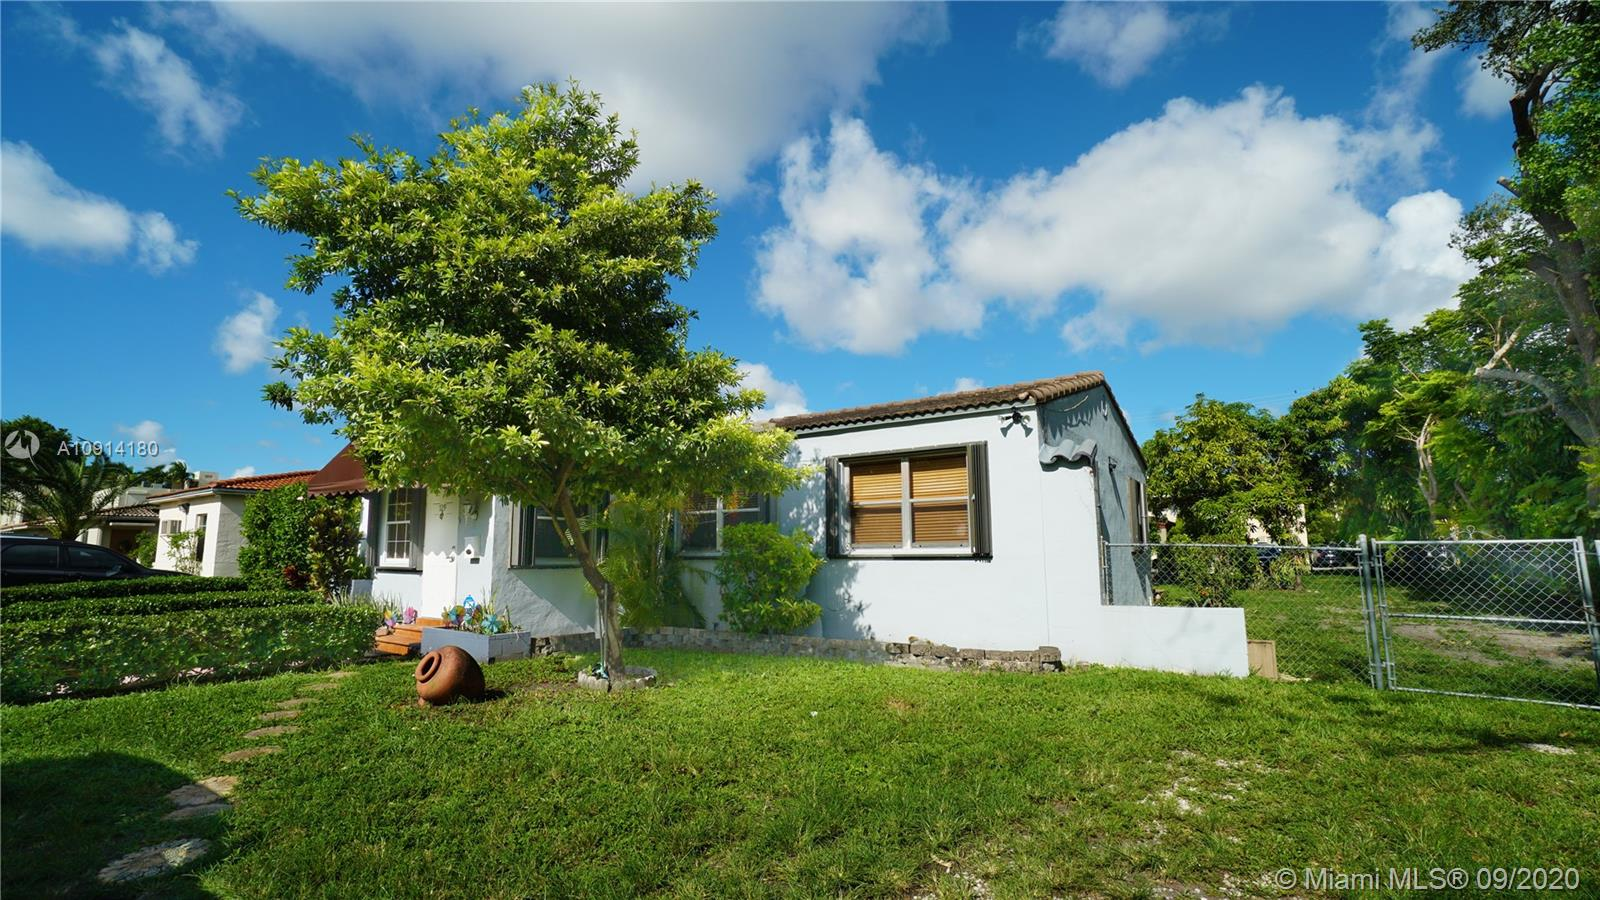 729  Red Rd  For Sale A10914180, FL